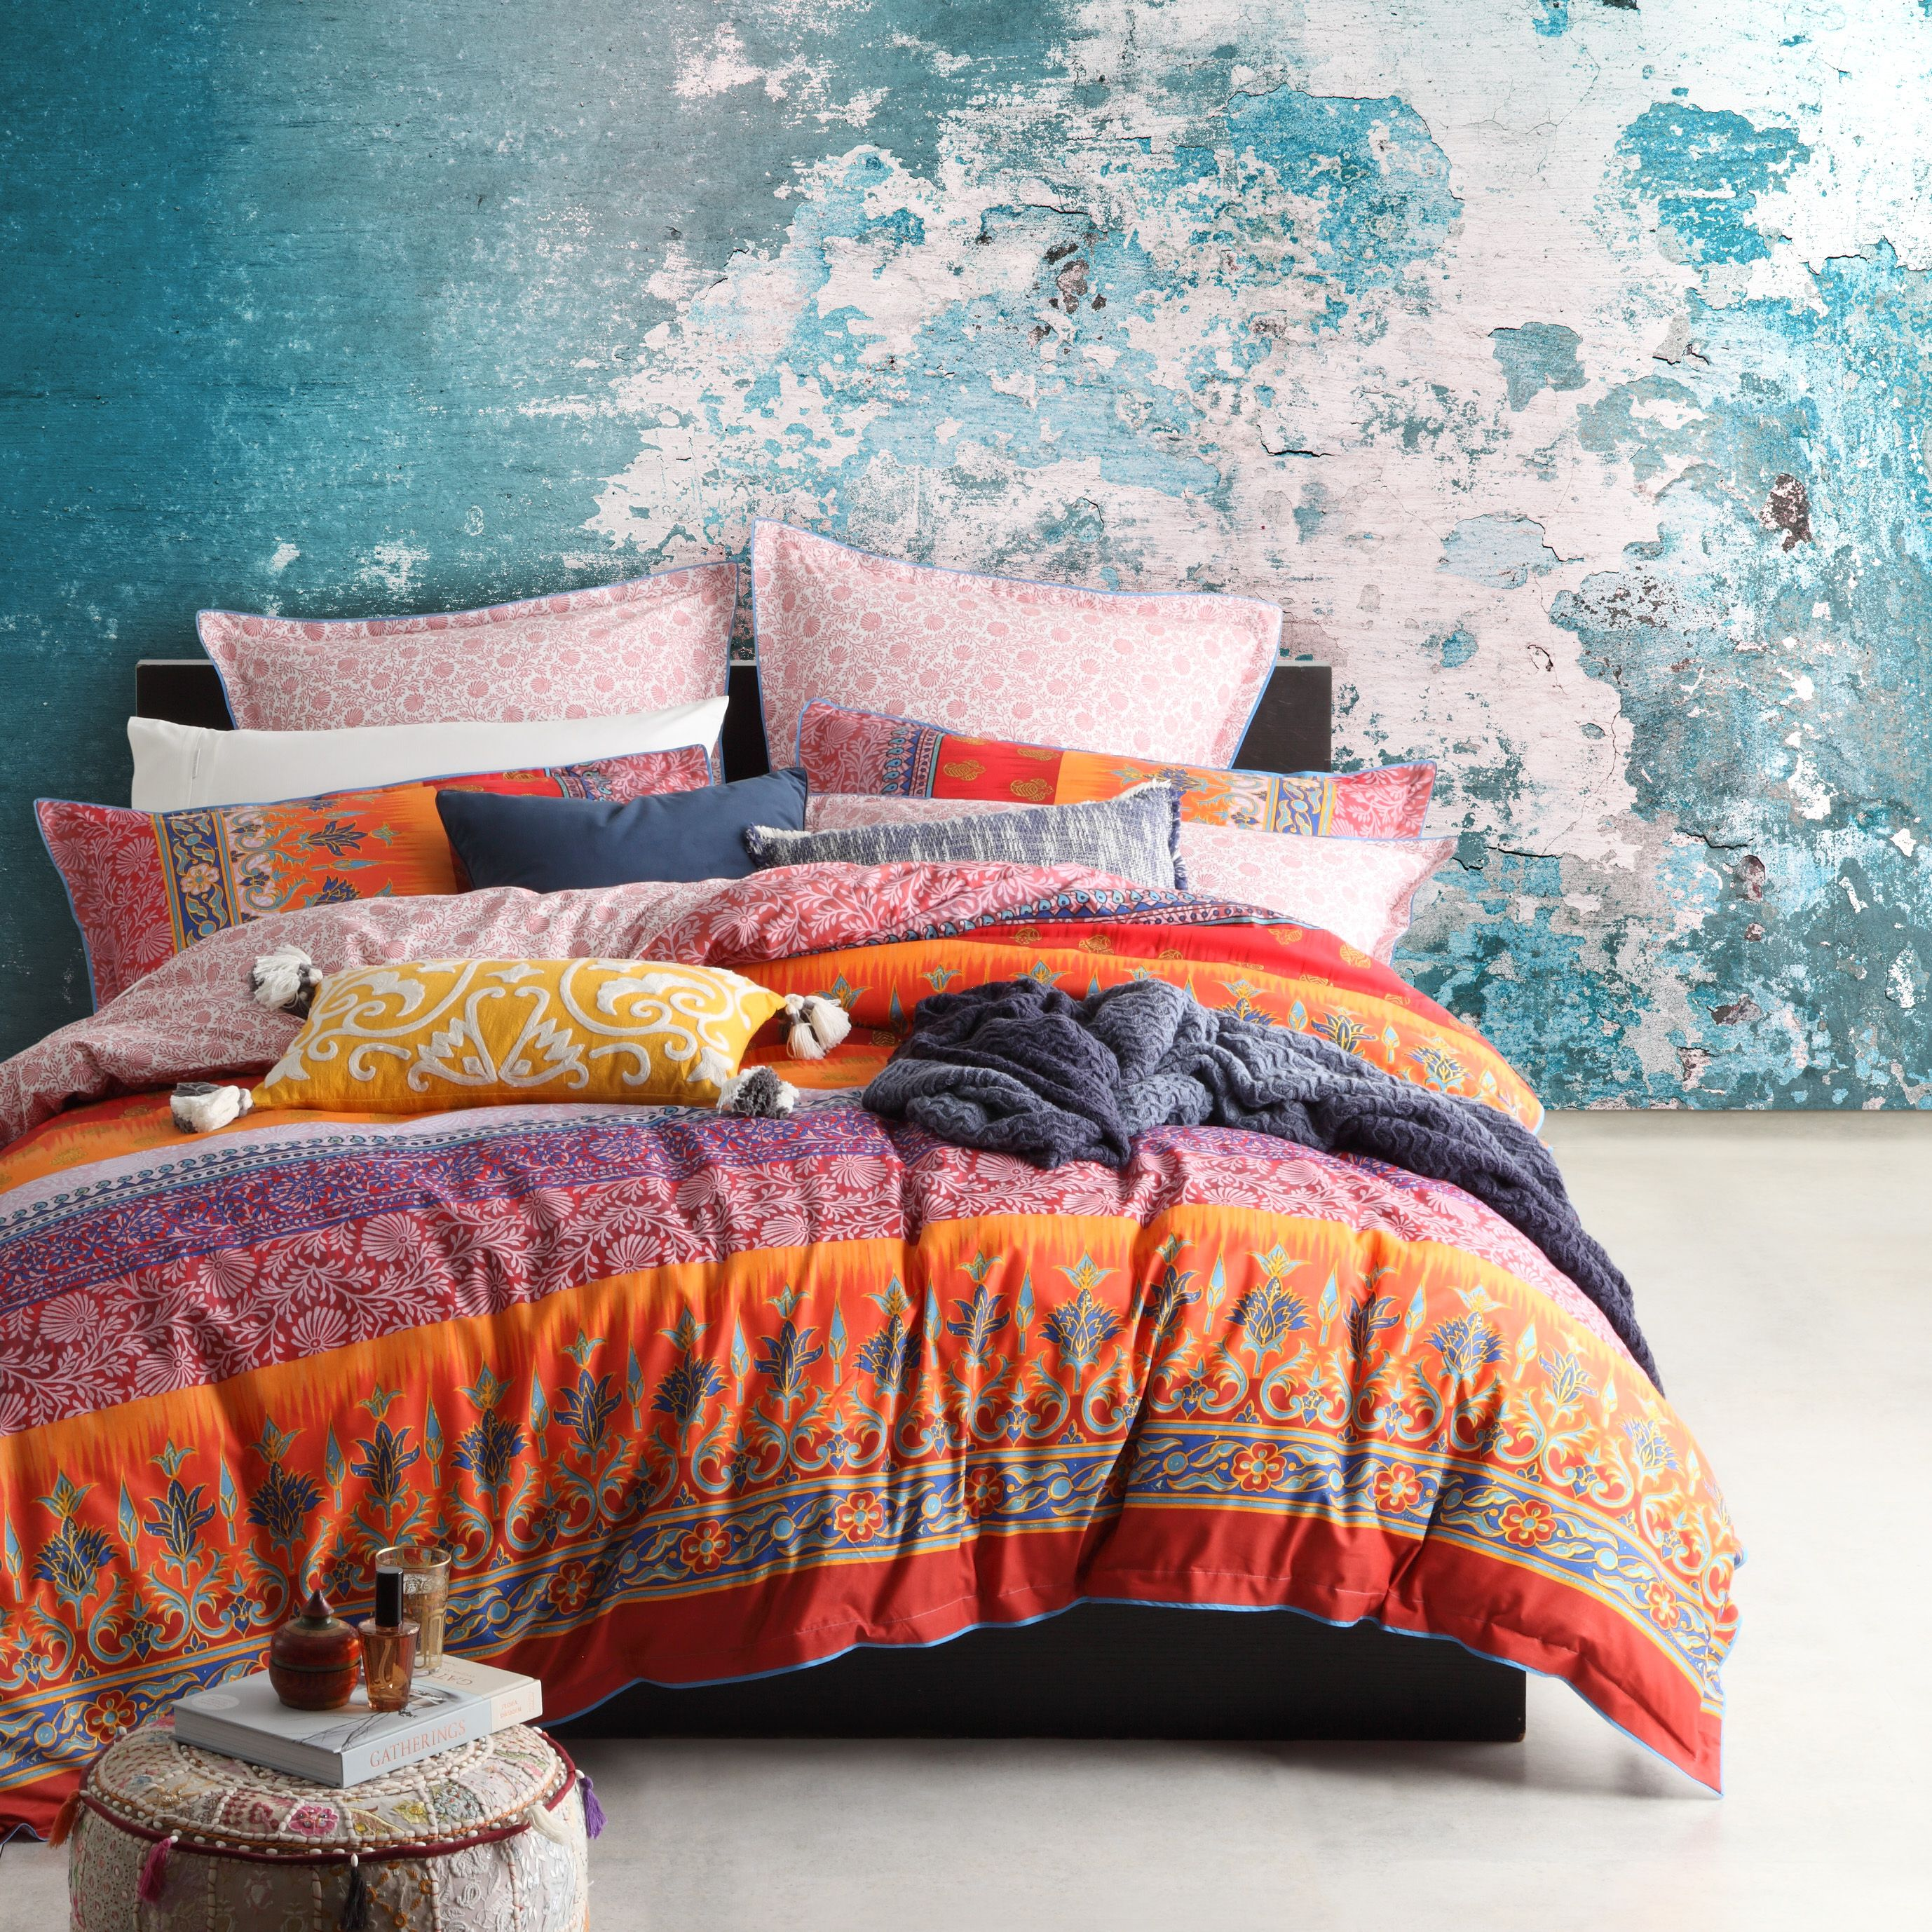 India Spice Brings Boho Chic To The Bedroom Panels Of Indian